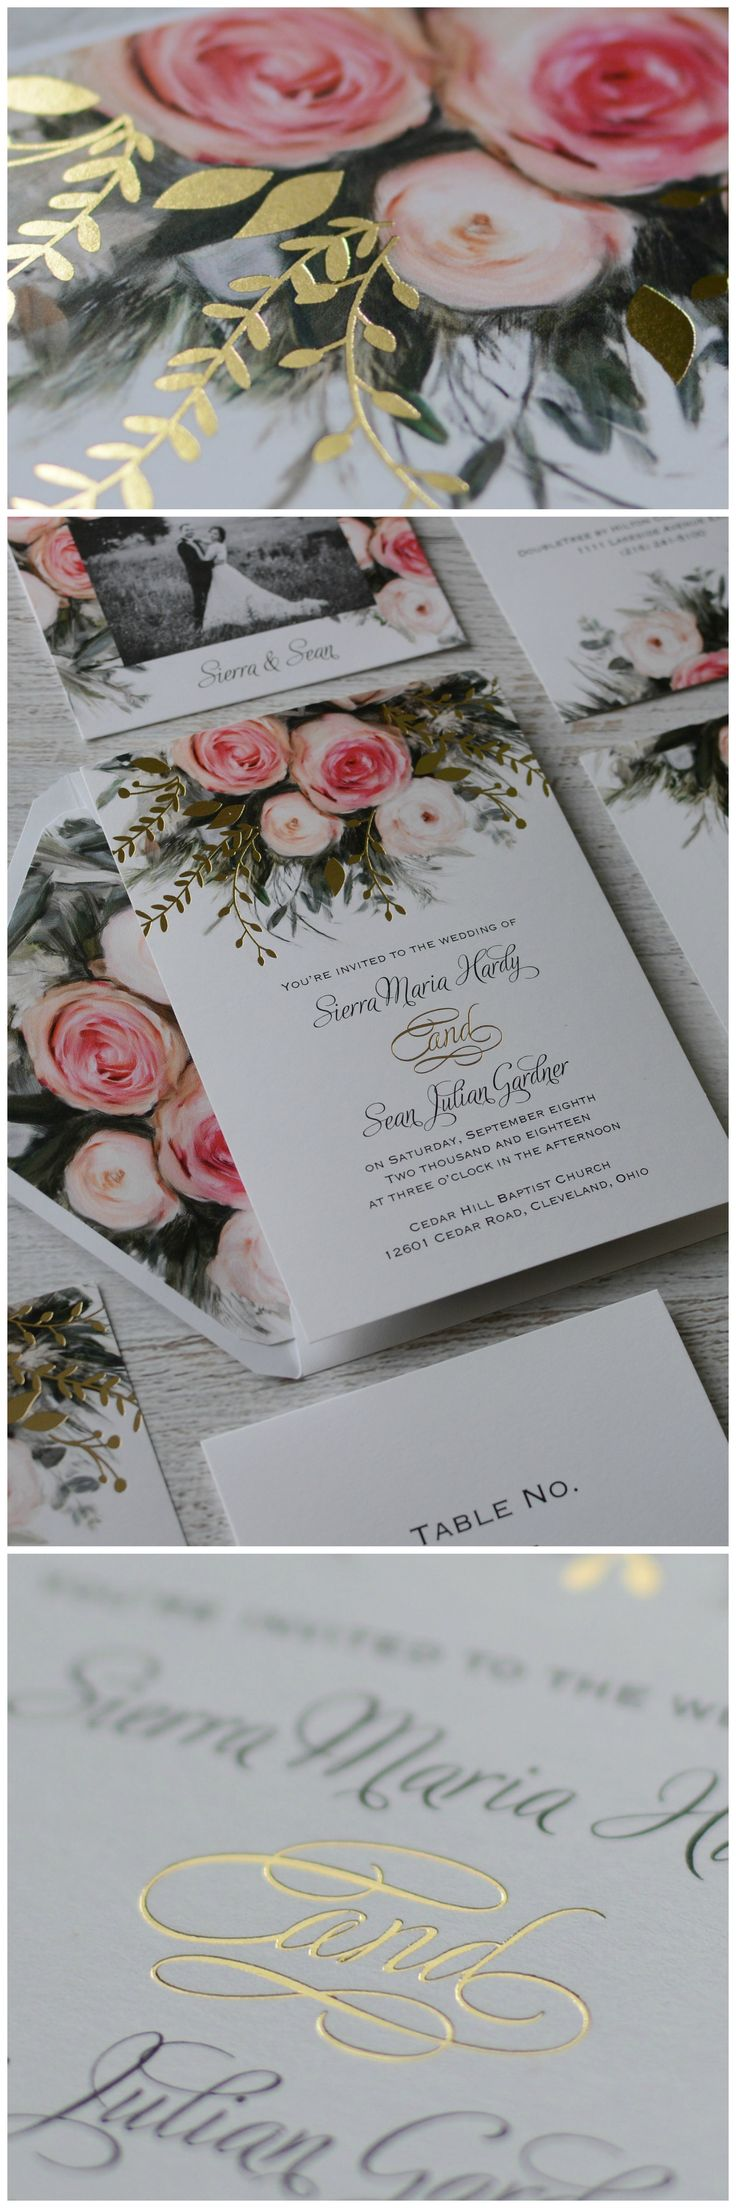 free wedding borders for invitations%0A Ethereal Garden  Foil Invitation